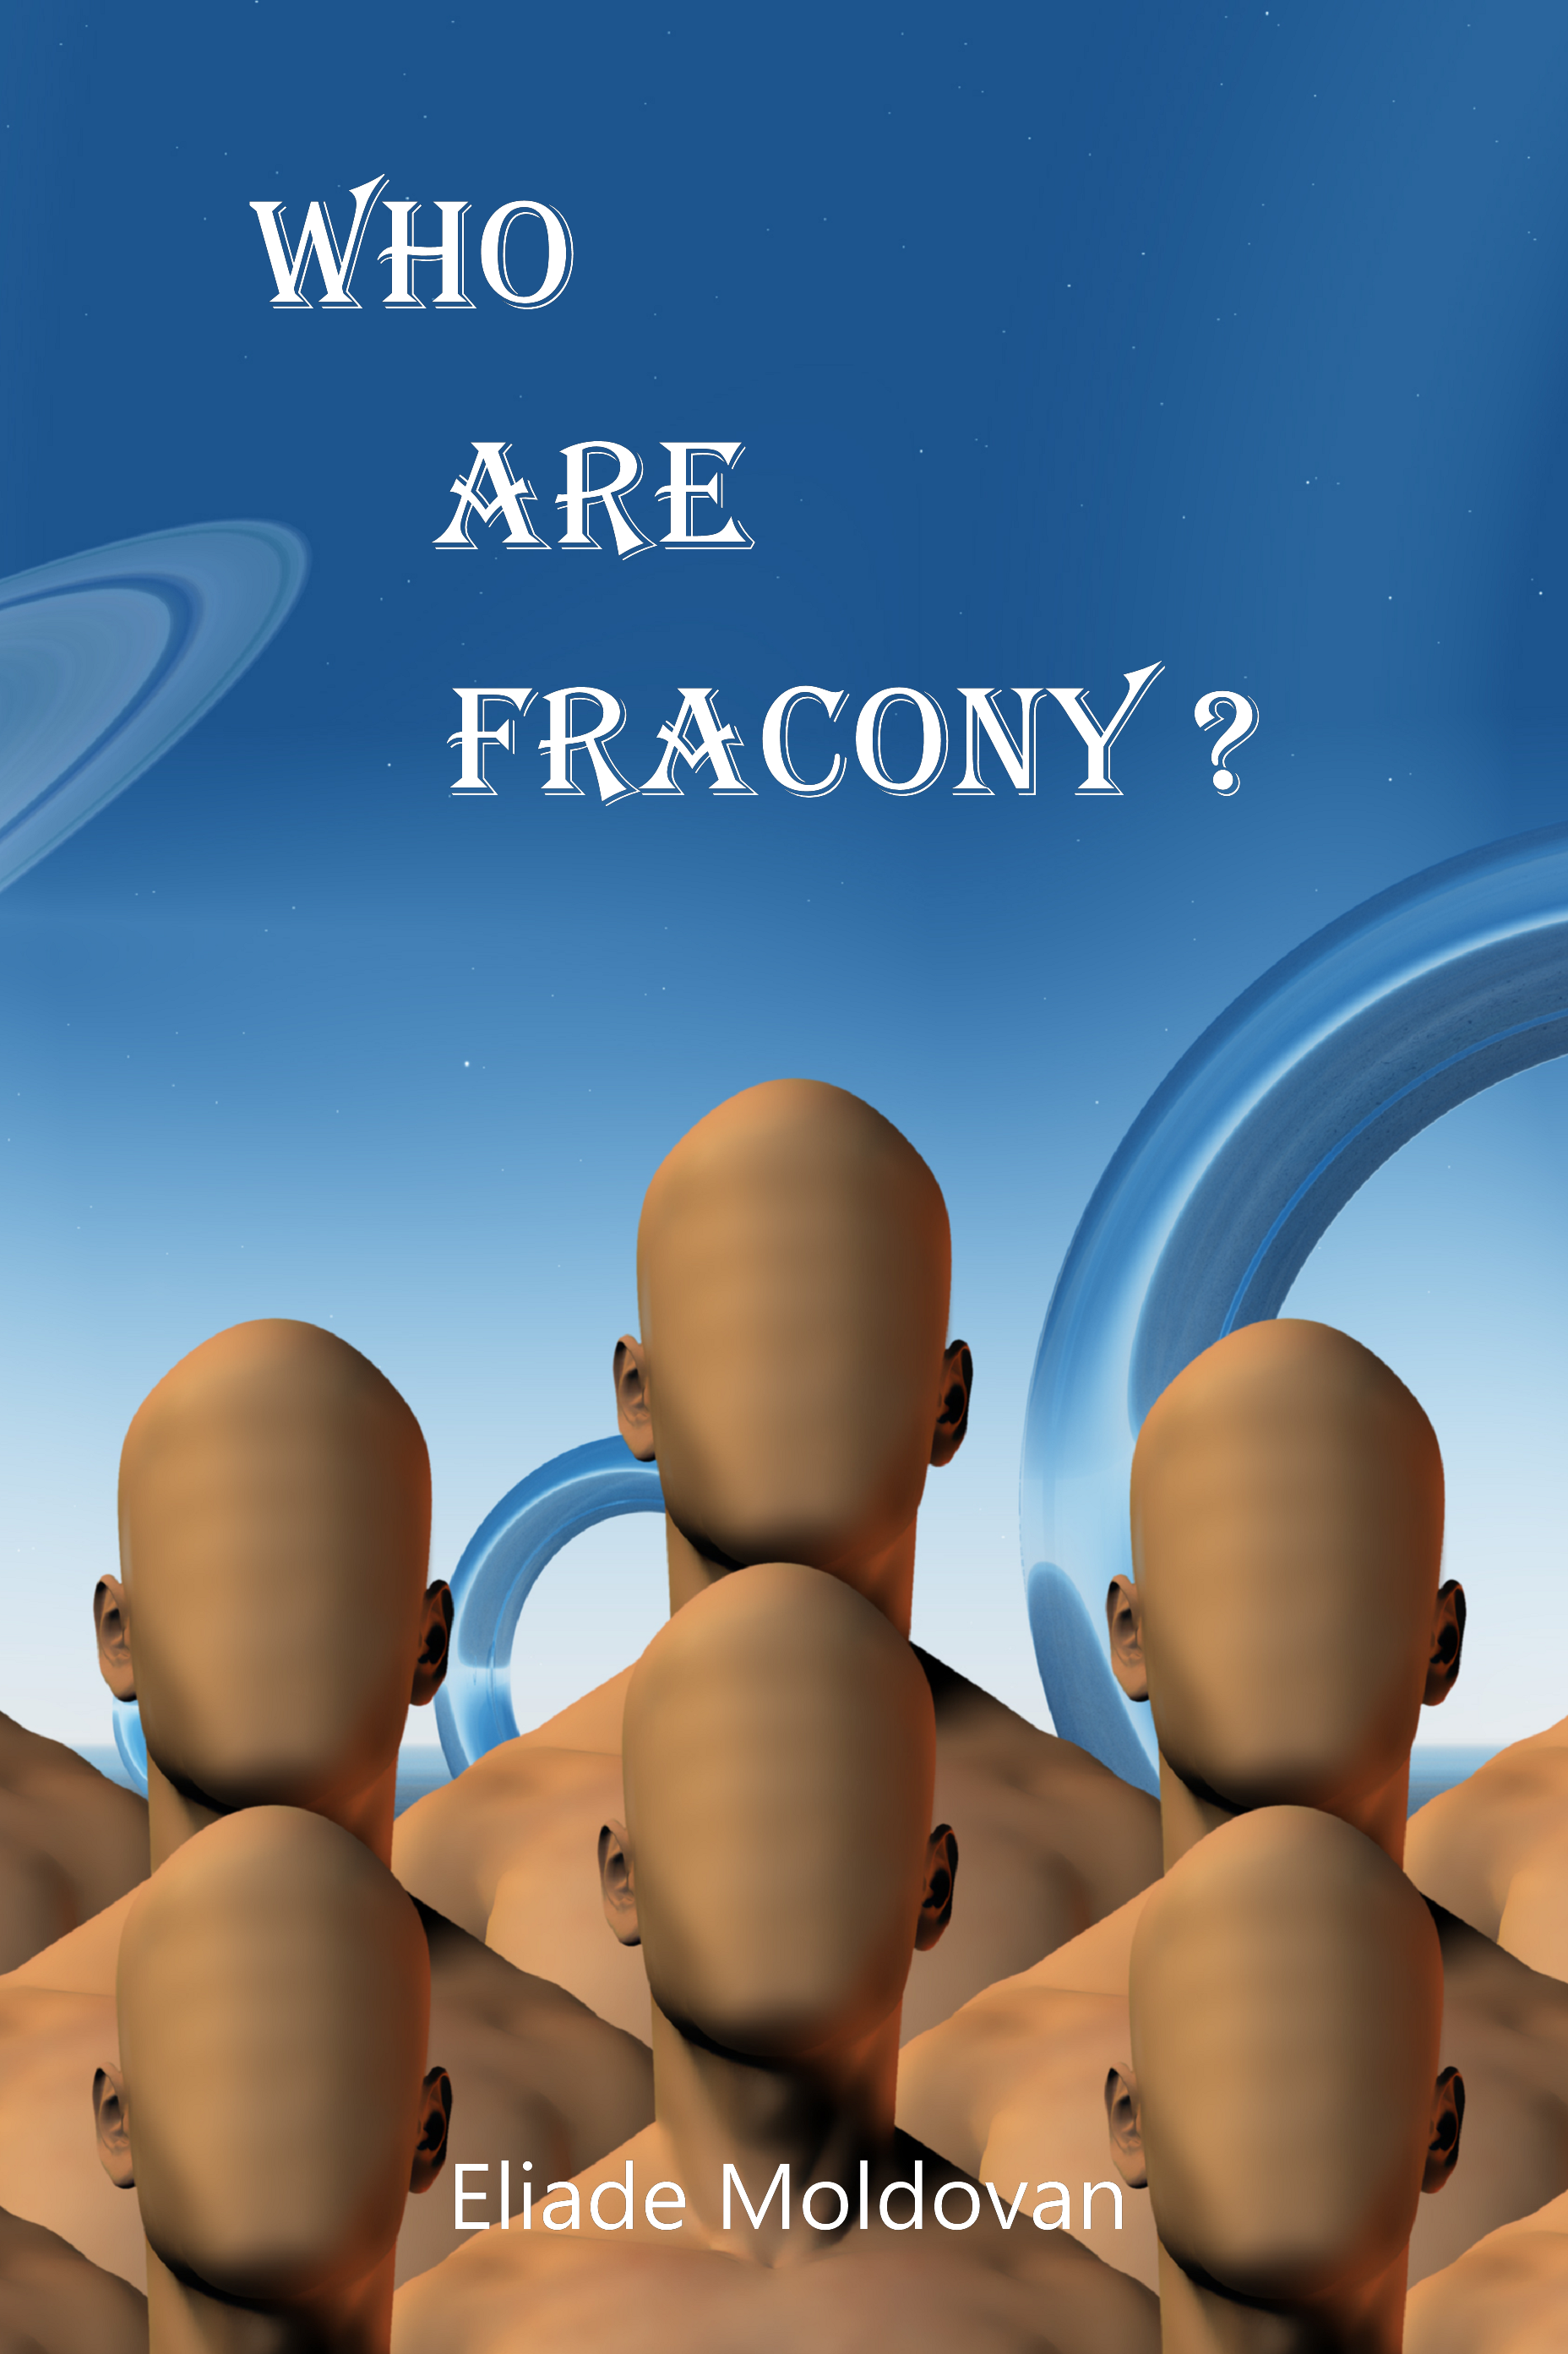 A Romanian-Born Writer Takes Questions of Religion to Galactic Heights in His Intellectual Sci-Fi Novel, Who Are Fracony?